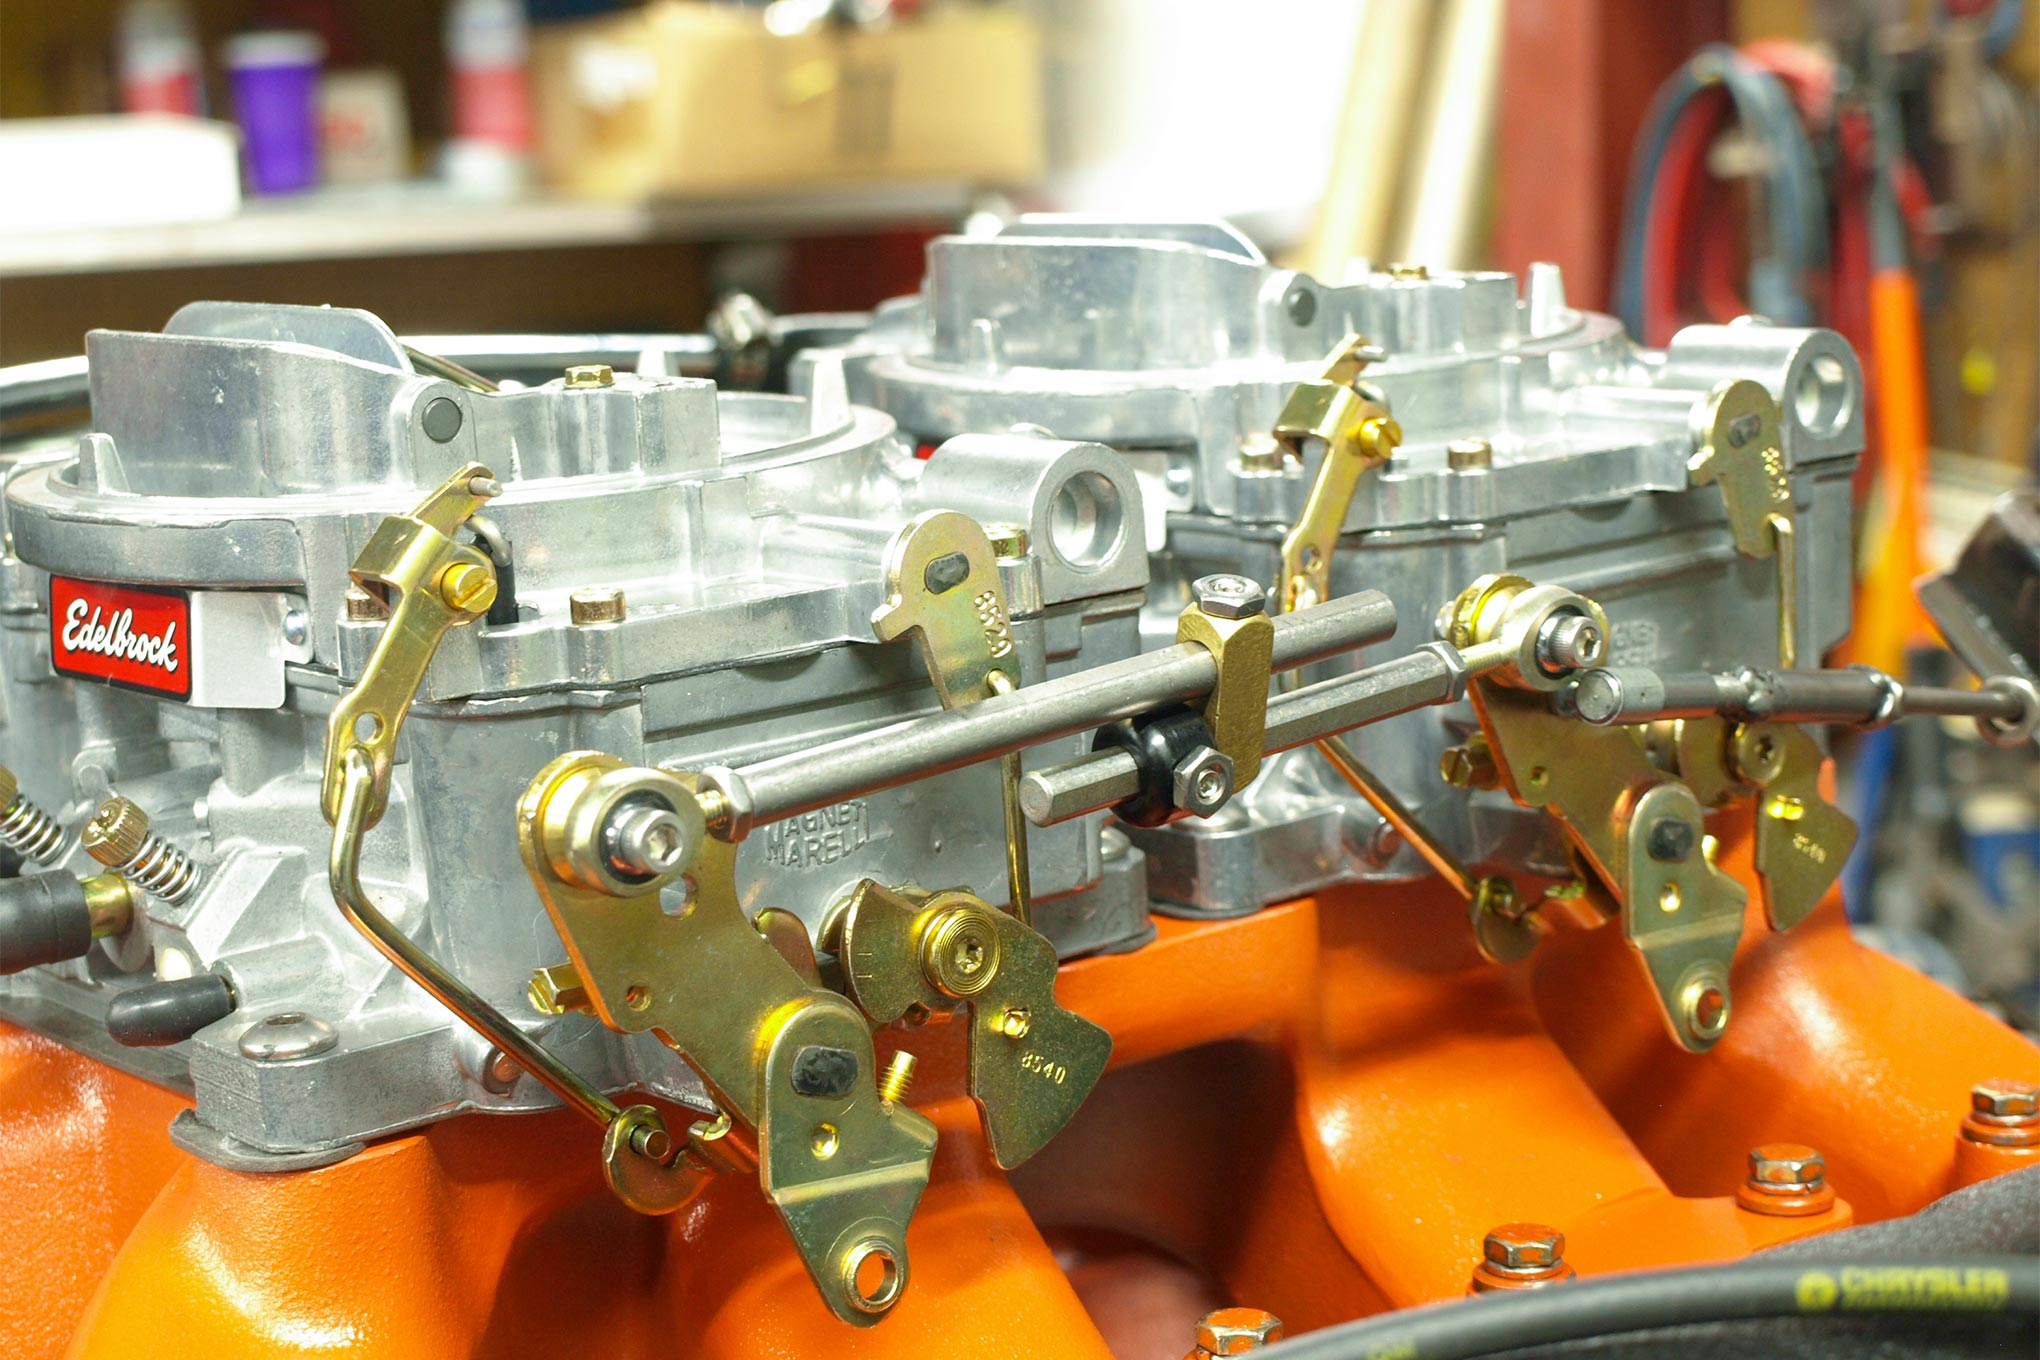 And for the grand finale, and to answer those who insist Hemis must have dual-quads to fill the void between those massive rocker covers, the Edelbrock Air Gap 5210 with twin Edebrock Performer 1406 carbs replaced the M1 and Holley. Horsepower jumped to 594.5 at 6,200 rpm with 542.4 lb-ft at 5,200 rpm. R.A.D. was amazed by how the dual Performers delivered nearly ideal fuel/air ratios right from the box. No jetting or metering changes were made.